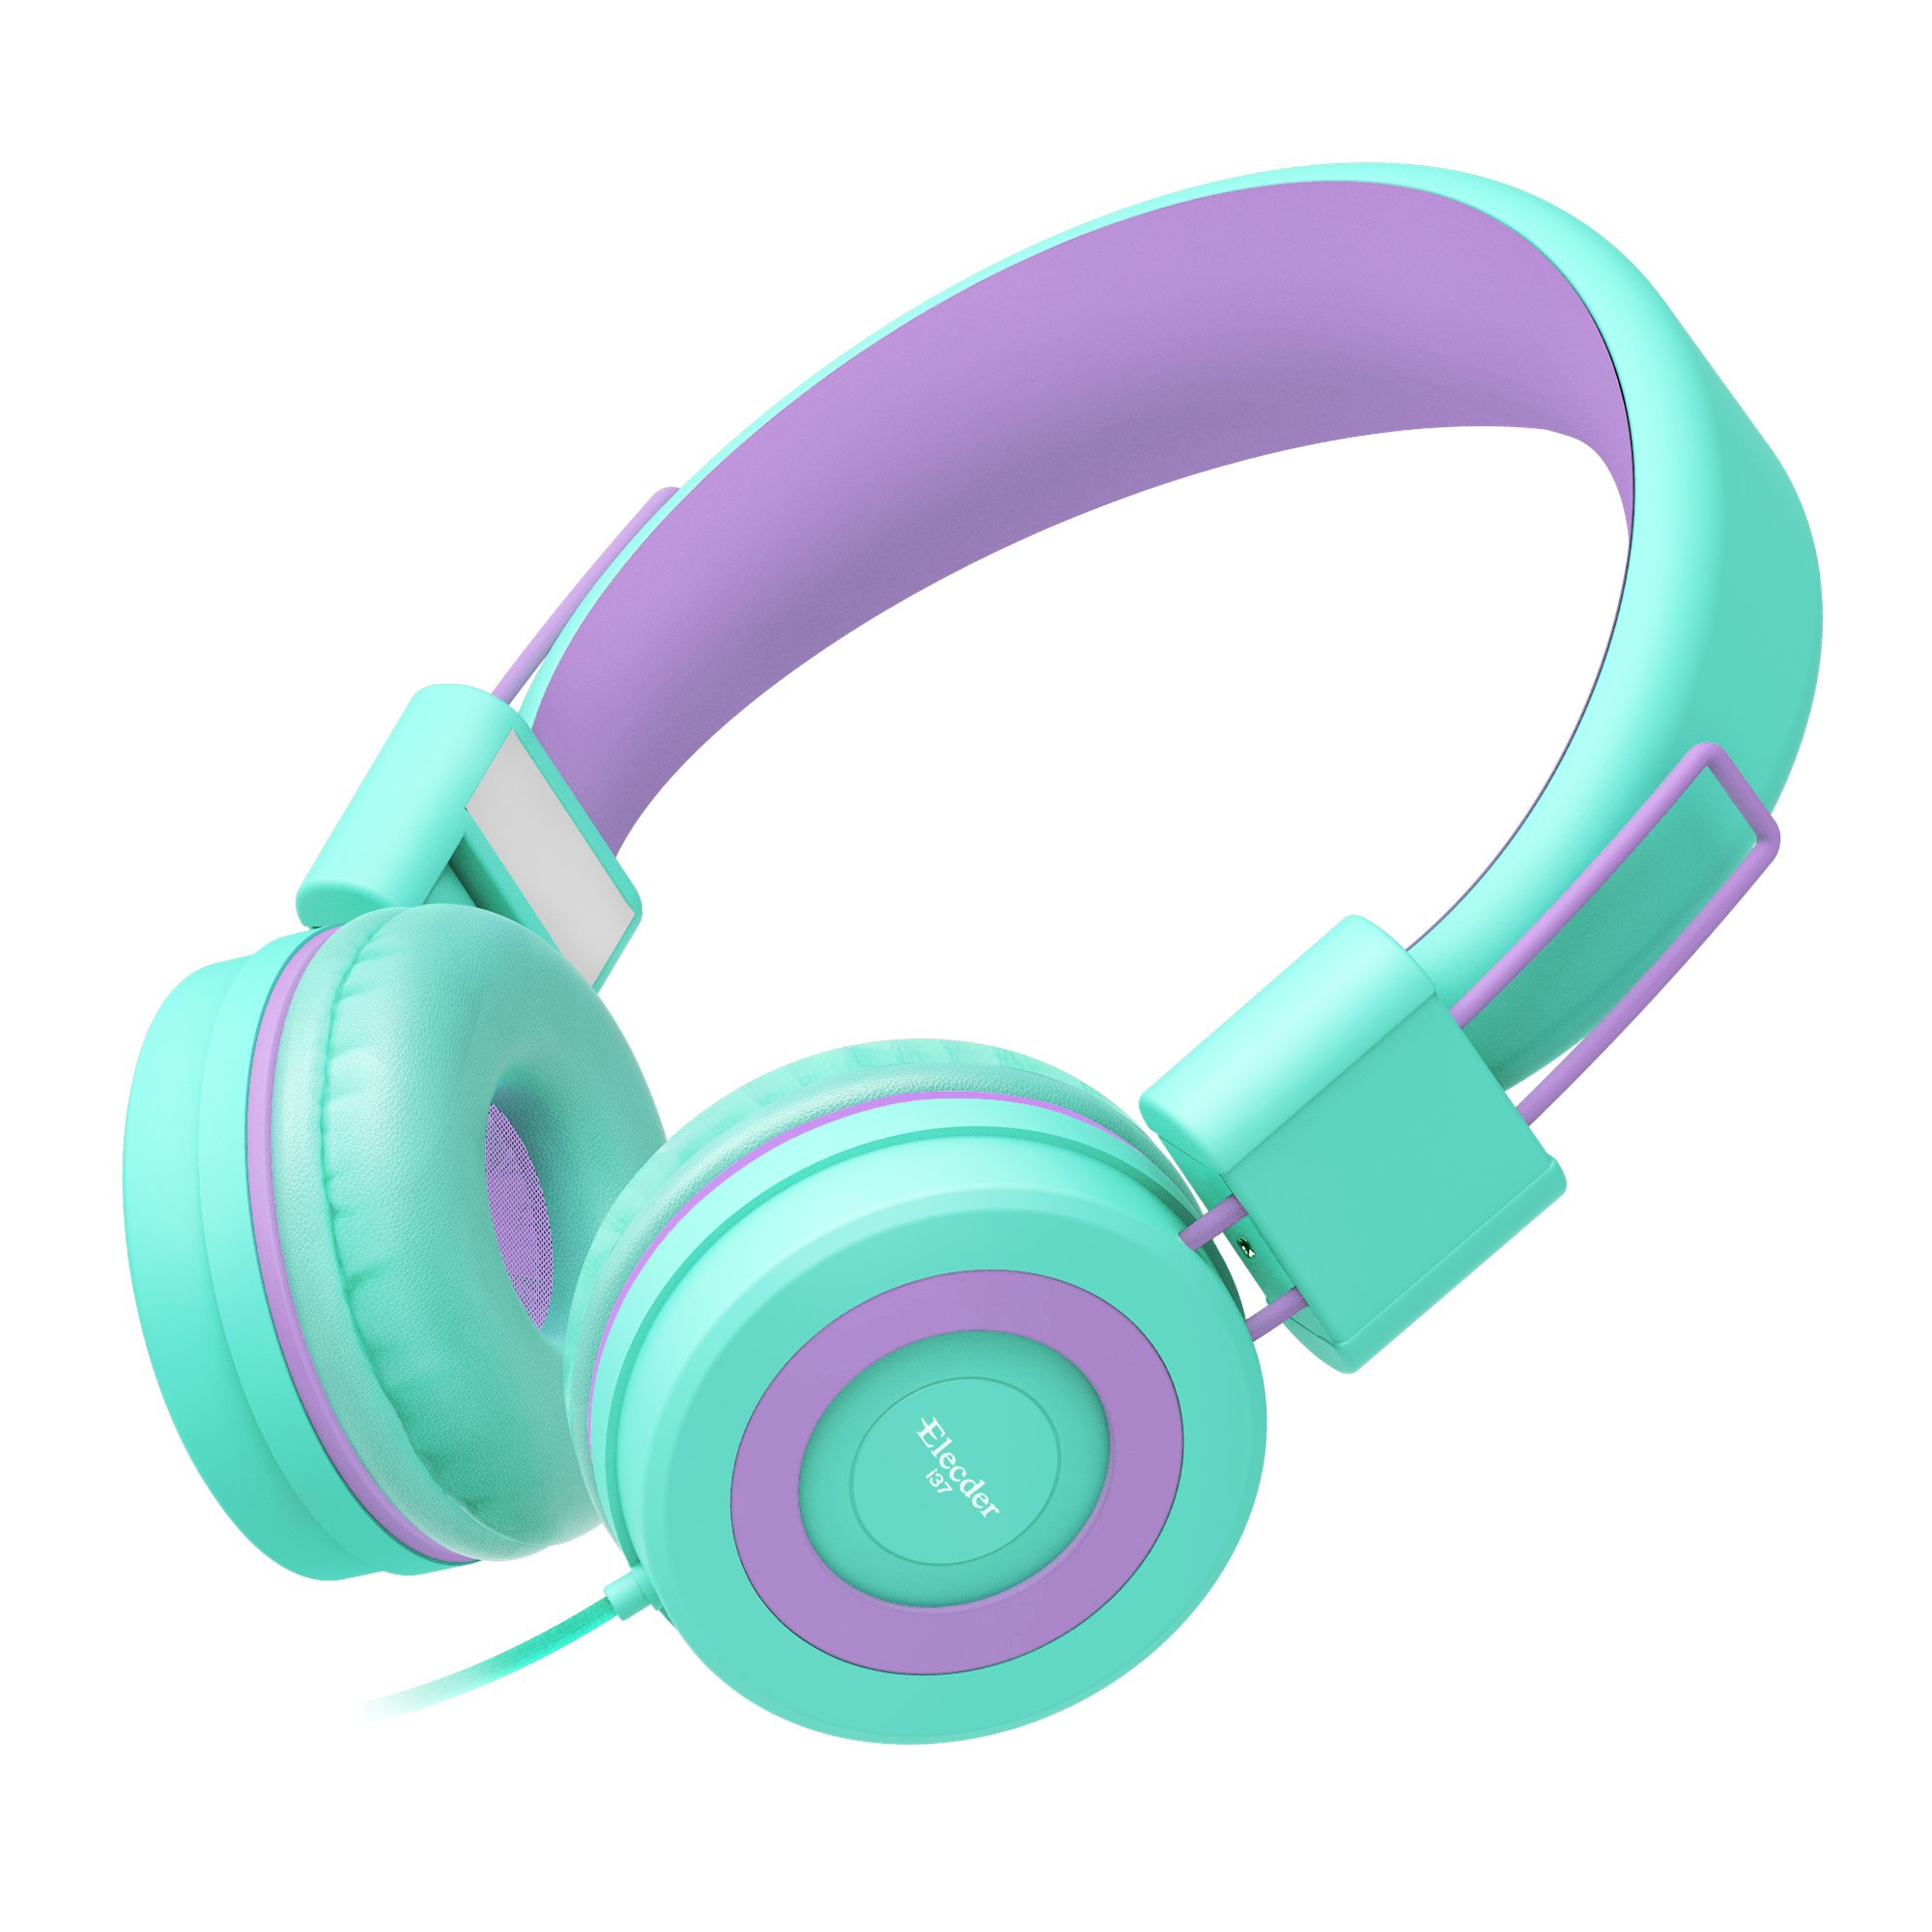 Elecder i37 Kids Headphones Children Girls Boys Teens Foldable Adjustable On Ear Headphones 3.5mm Jack Compatible iPad Cellphones Computer MP3/4 Kindle Airplane School Tablet Purple/Green by ELECDER